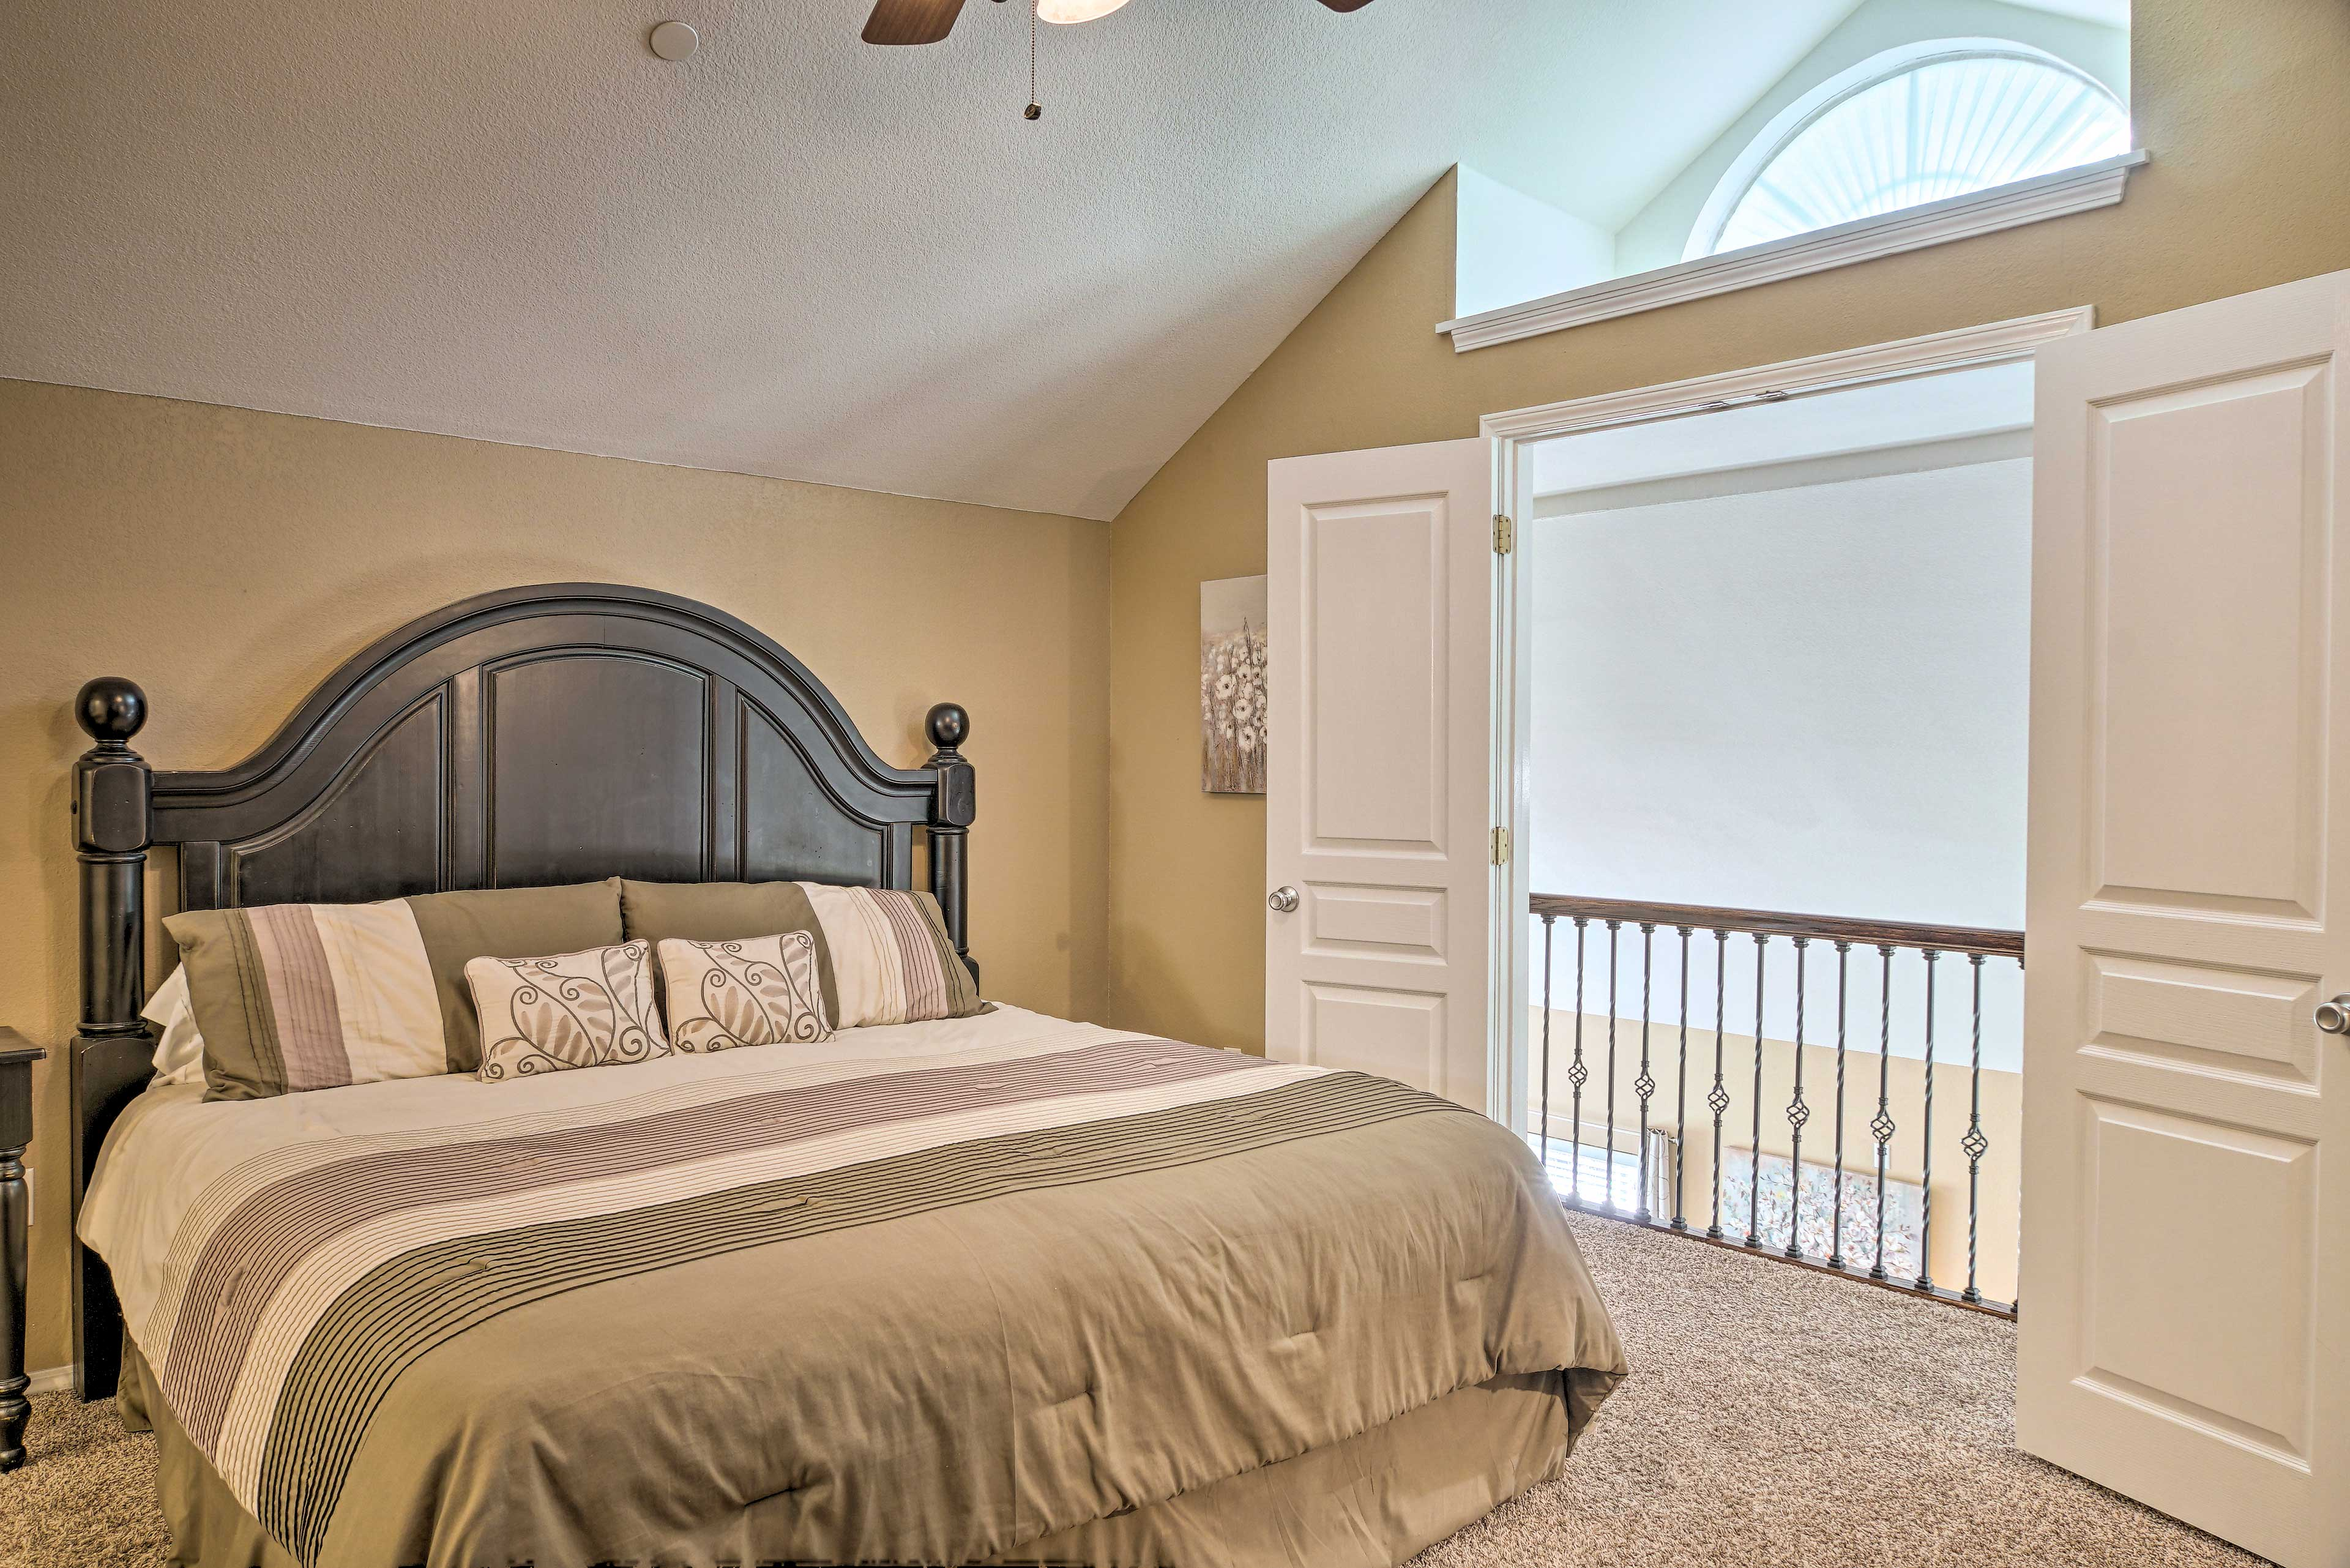 This king bed invites you to sleep peacefully.